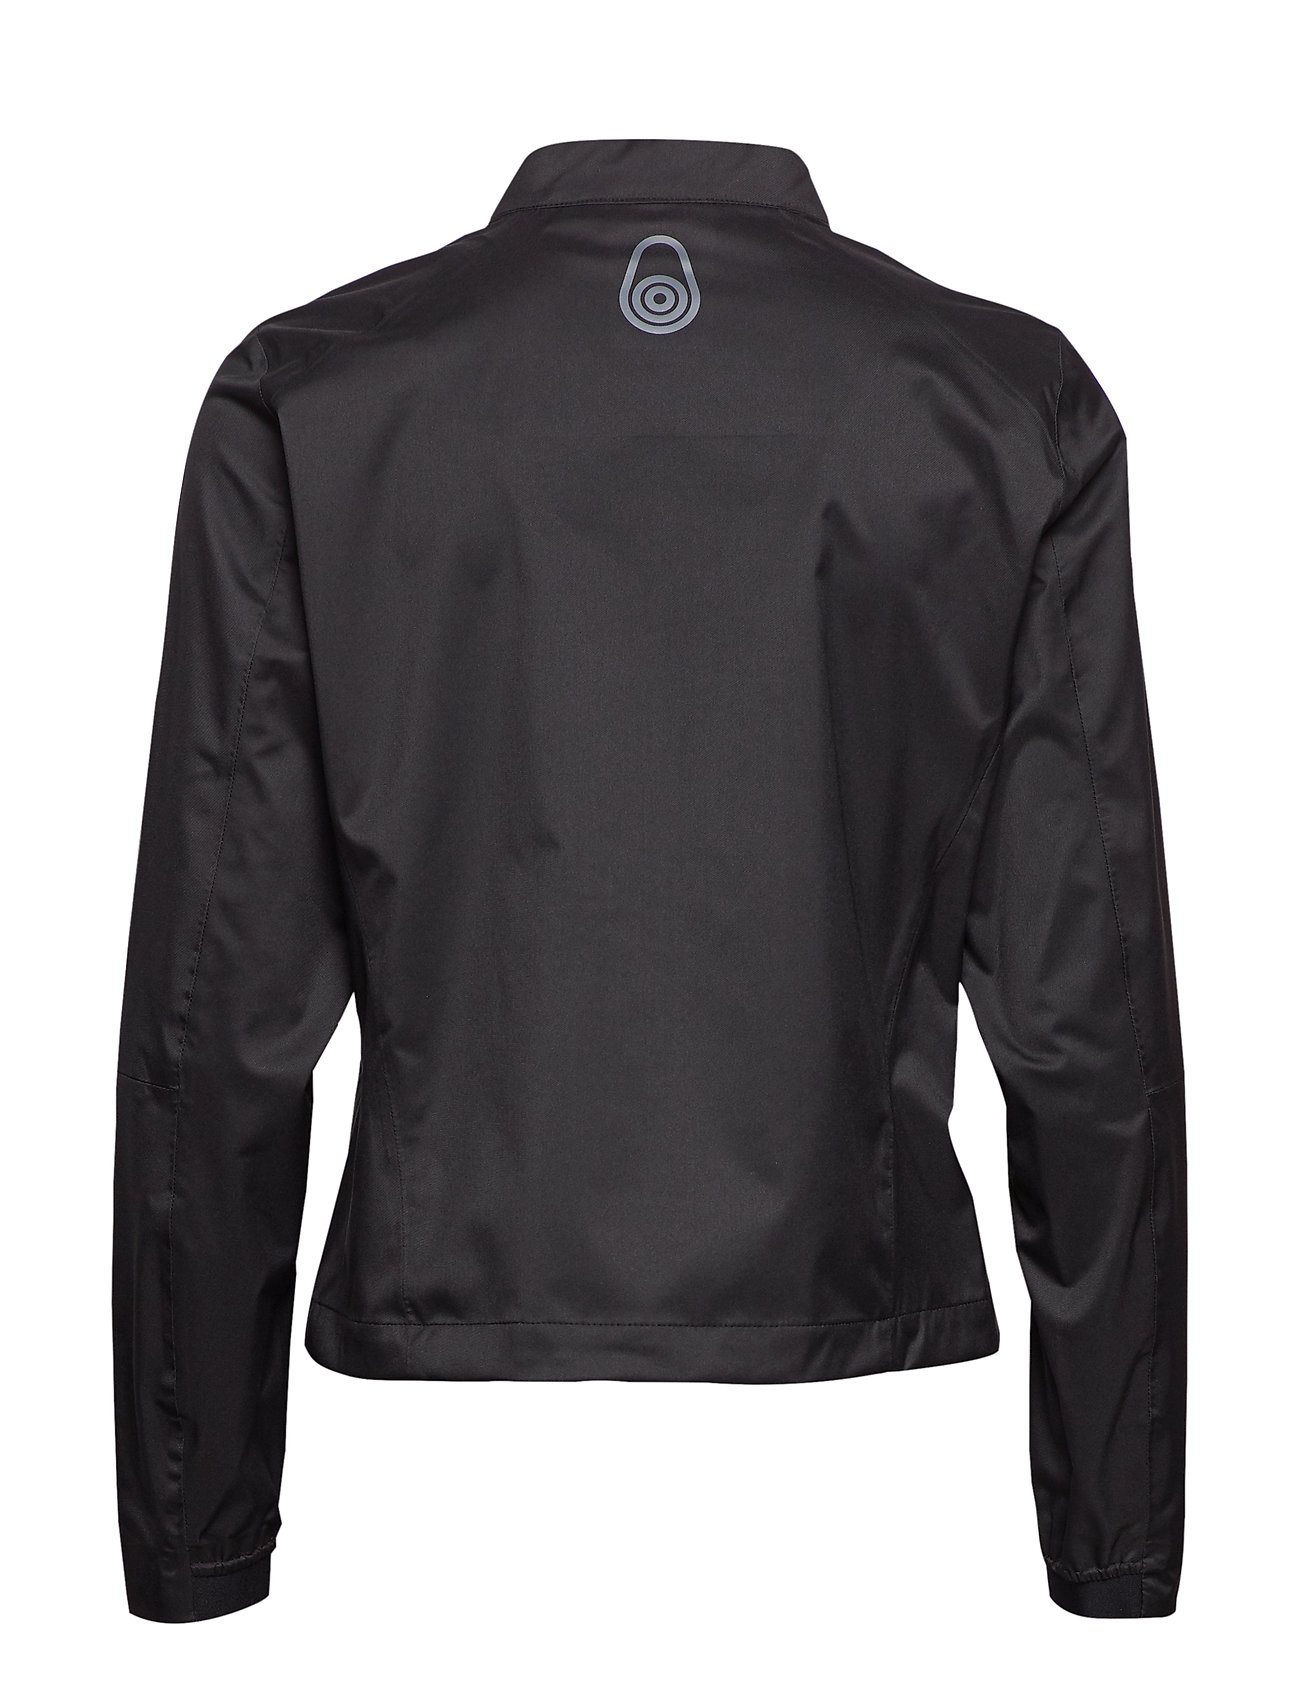 Technical W W Gale Gale JacketcarbonSail Racing sQrdhxoCBt